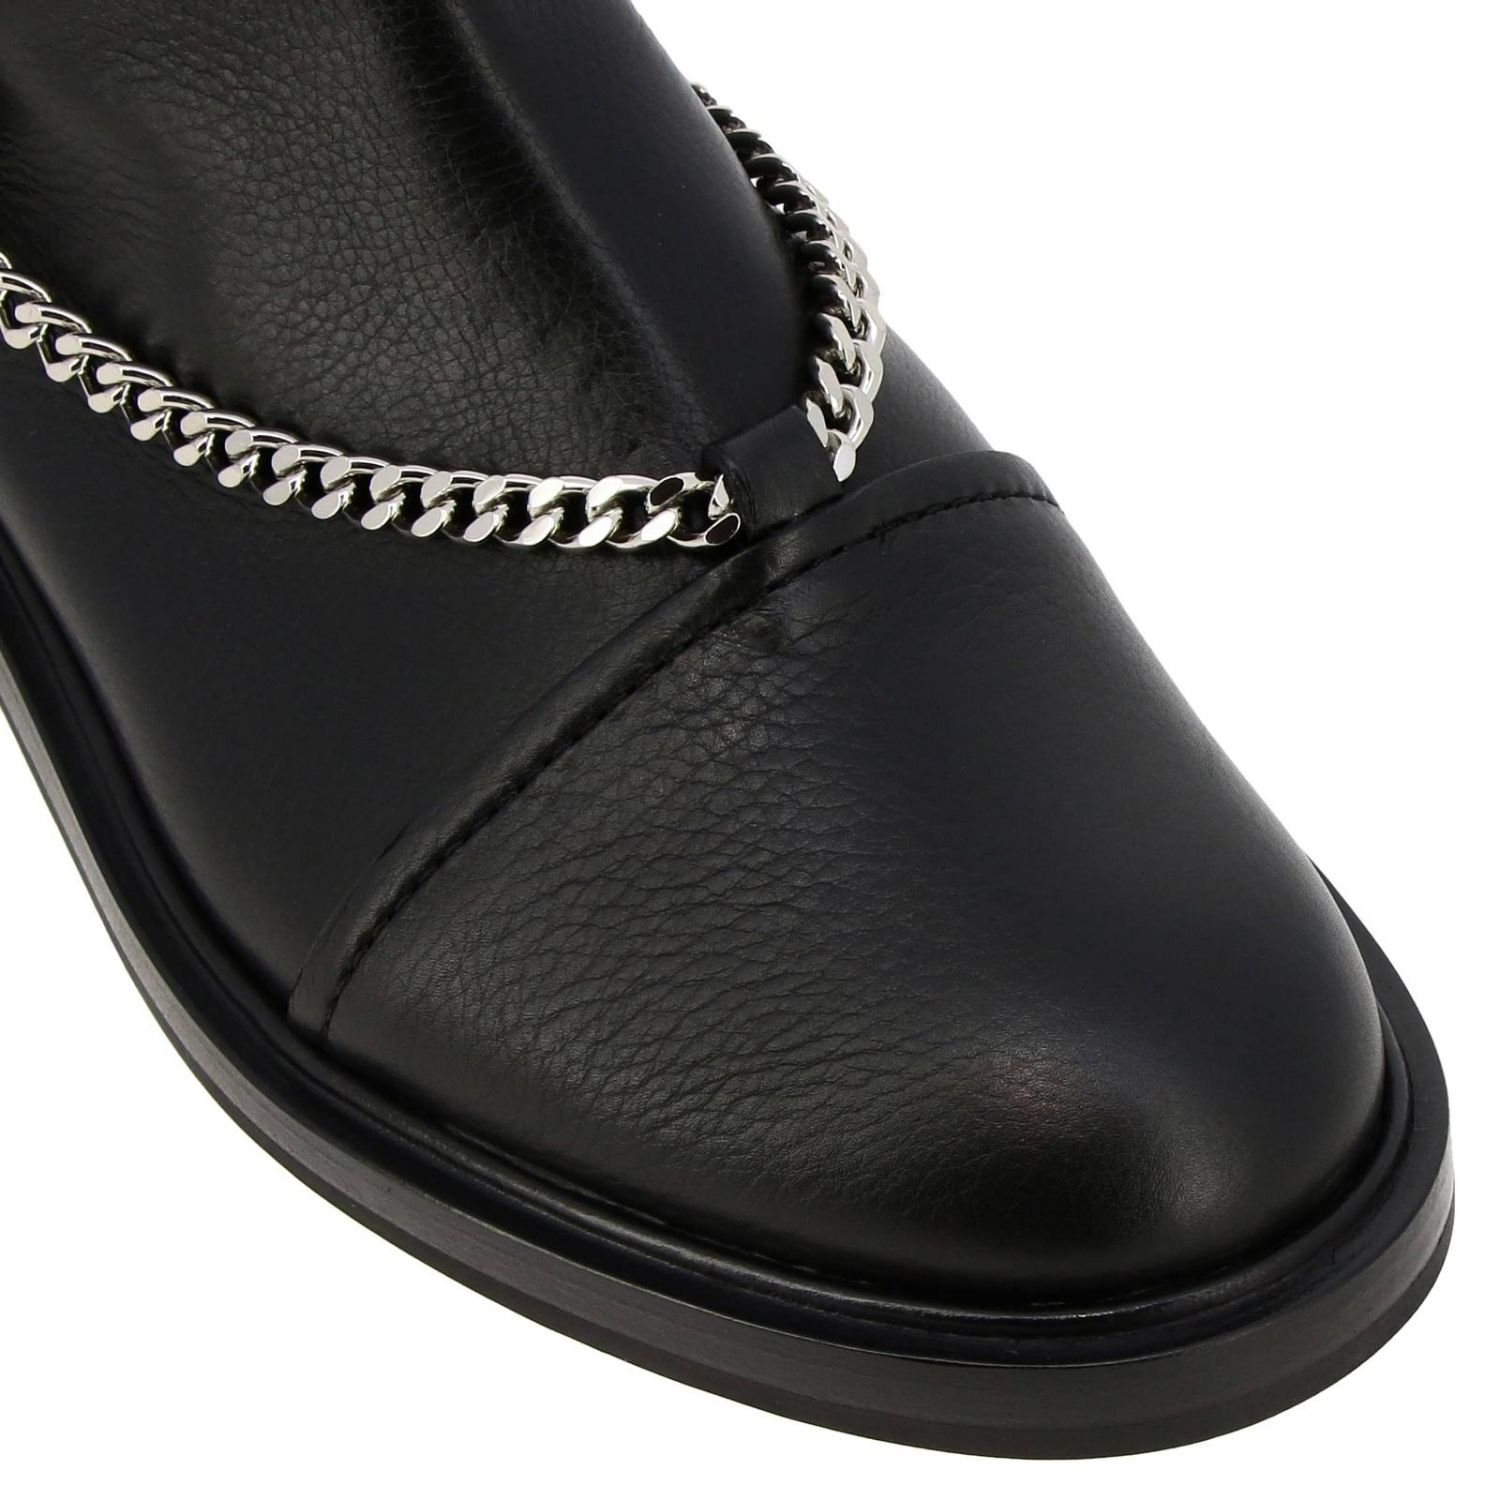 Tango Casadei biker boots in leather with metal chains black 3